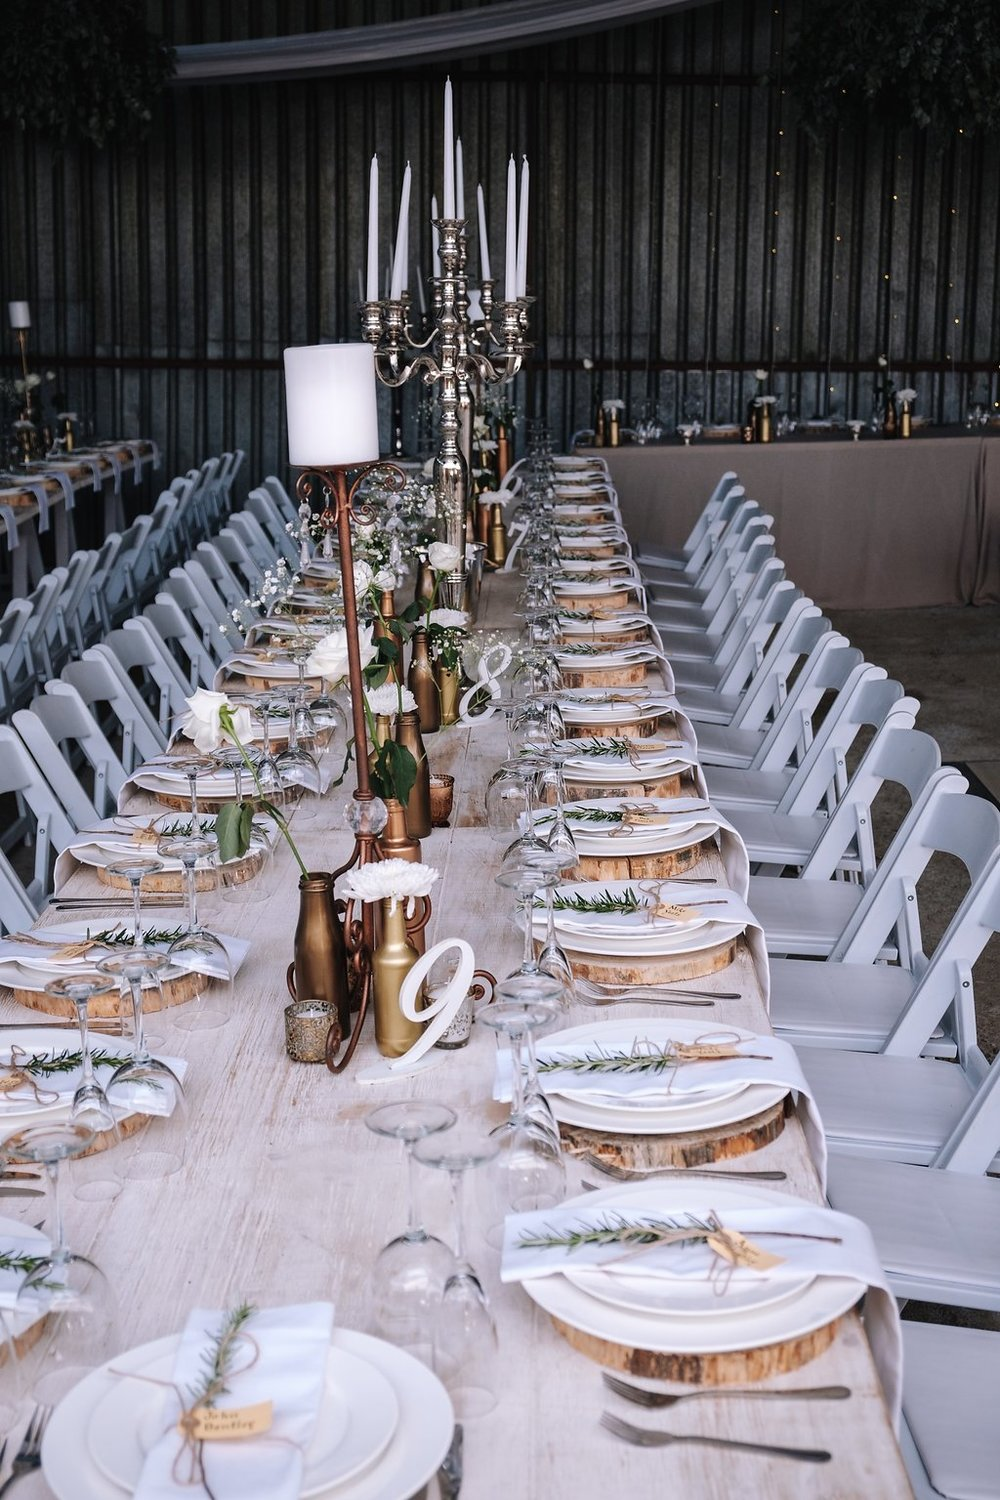 Gorgeous Simple Wedding Centerieces - Farm-Forest Wedding - The Overwhelmed Bride Wedding Blog